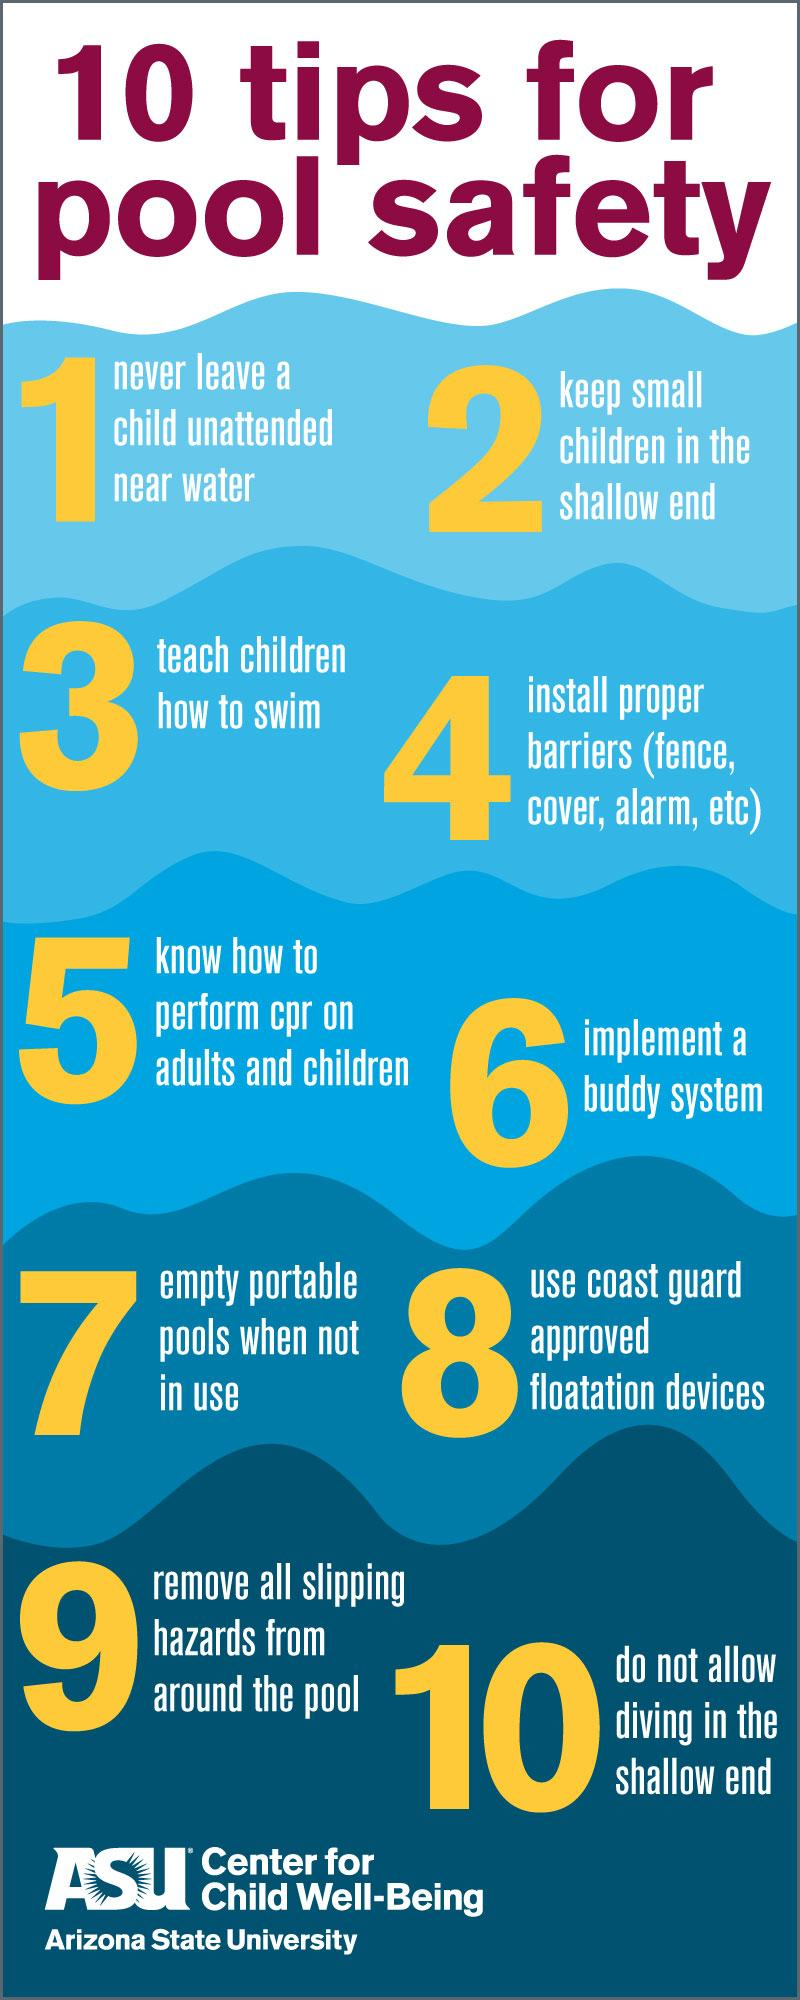 Arizona State University, ASU, #1Innovation, Pool Safety, Preventing Child drownings, how to stay safe in the pool, child drowning statistics, preventing kids from drowning, drowning deaths, pool deaths, swimming, learning to swim